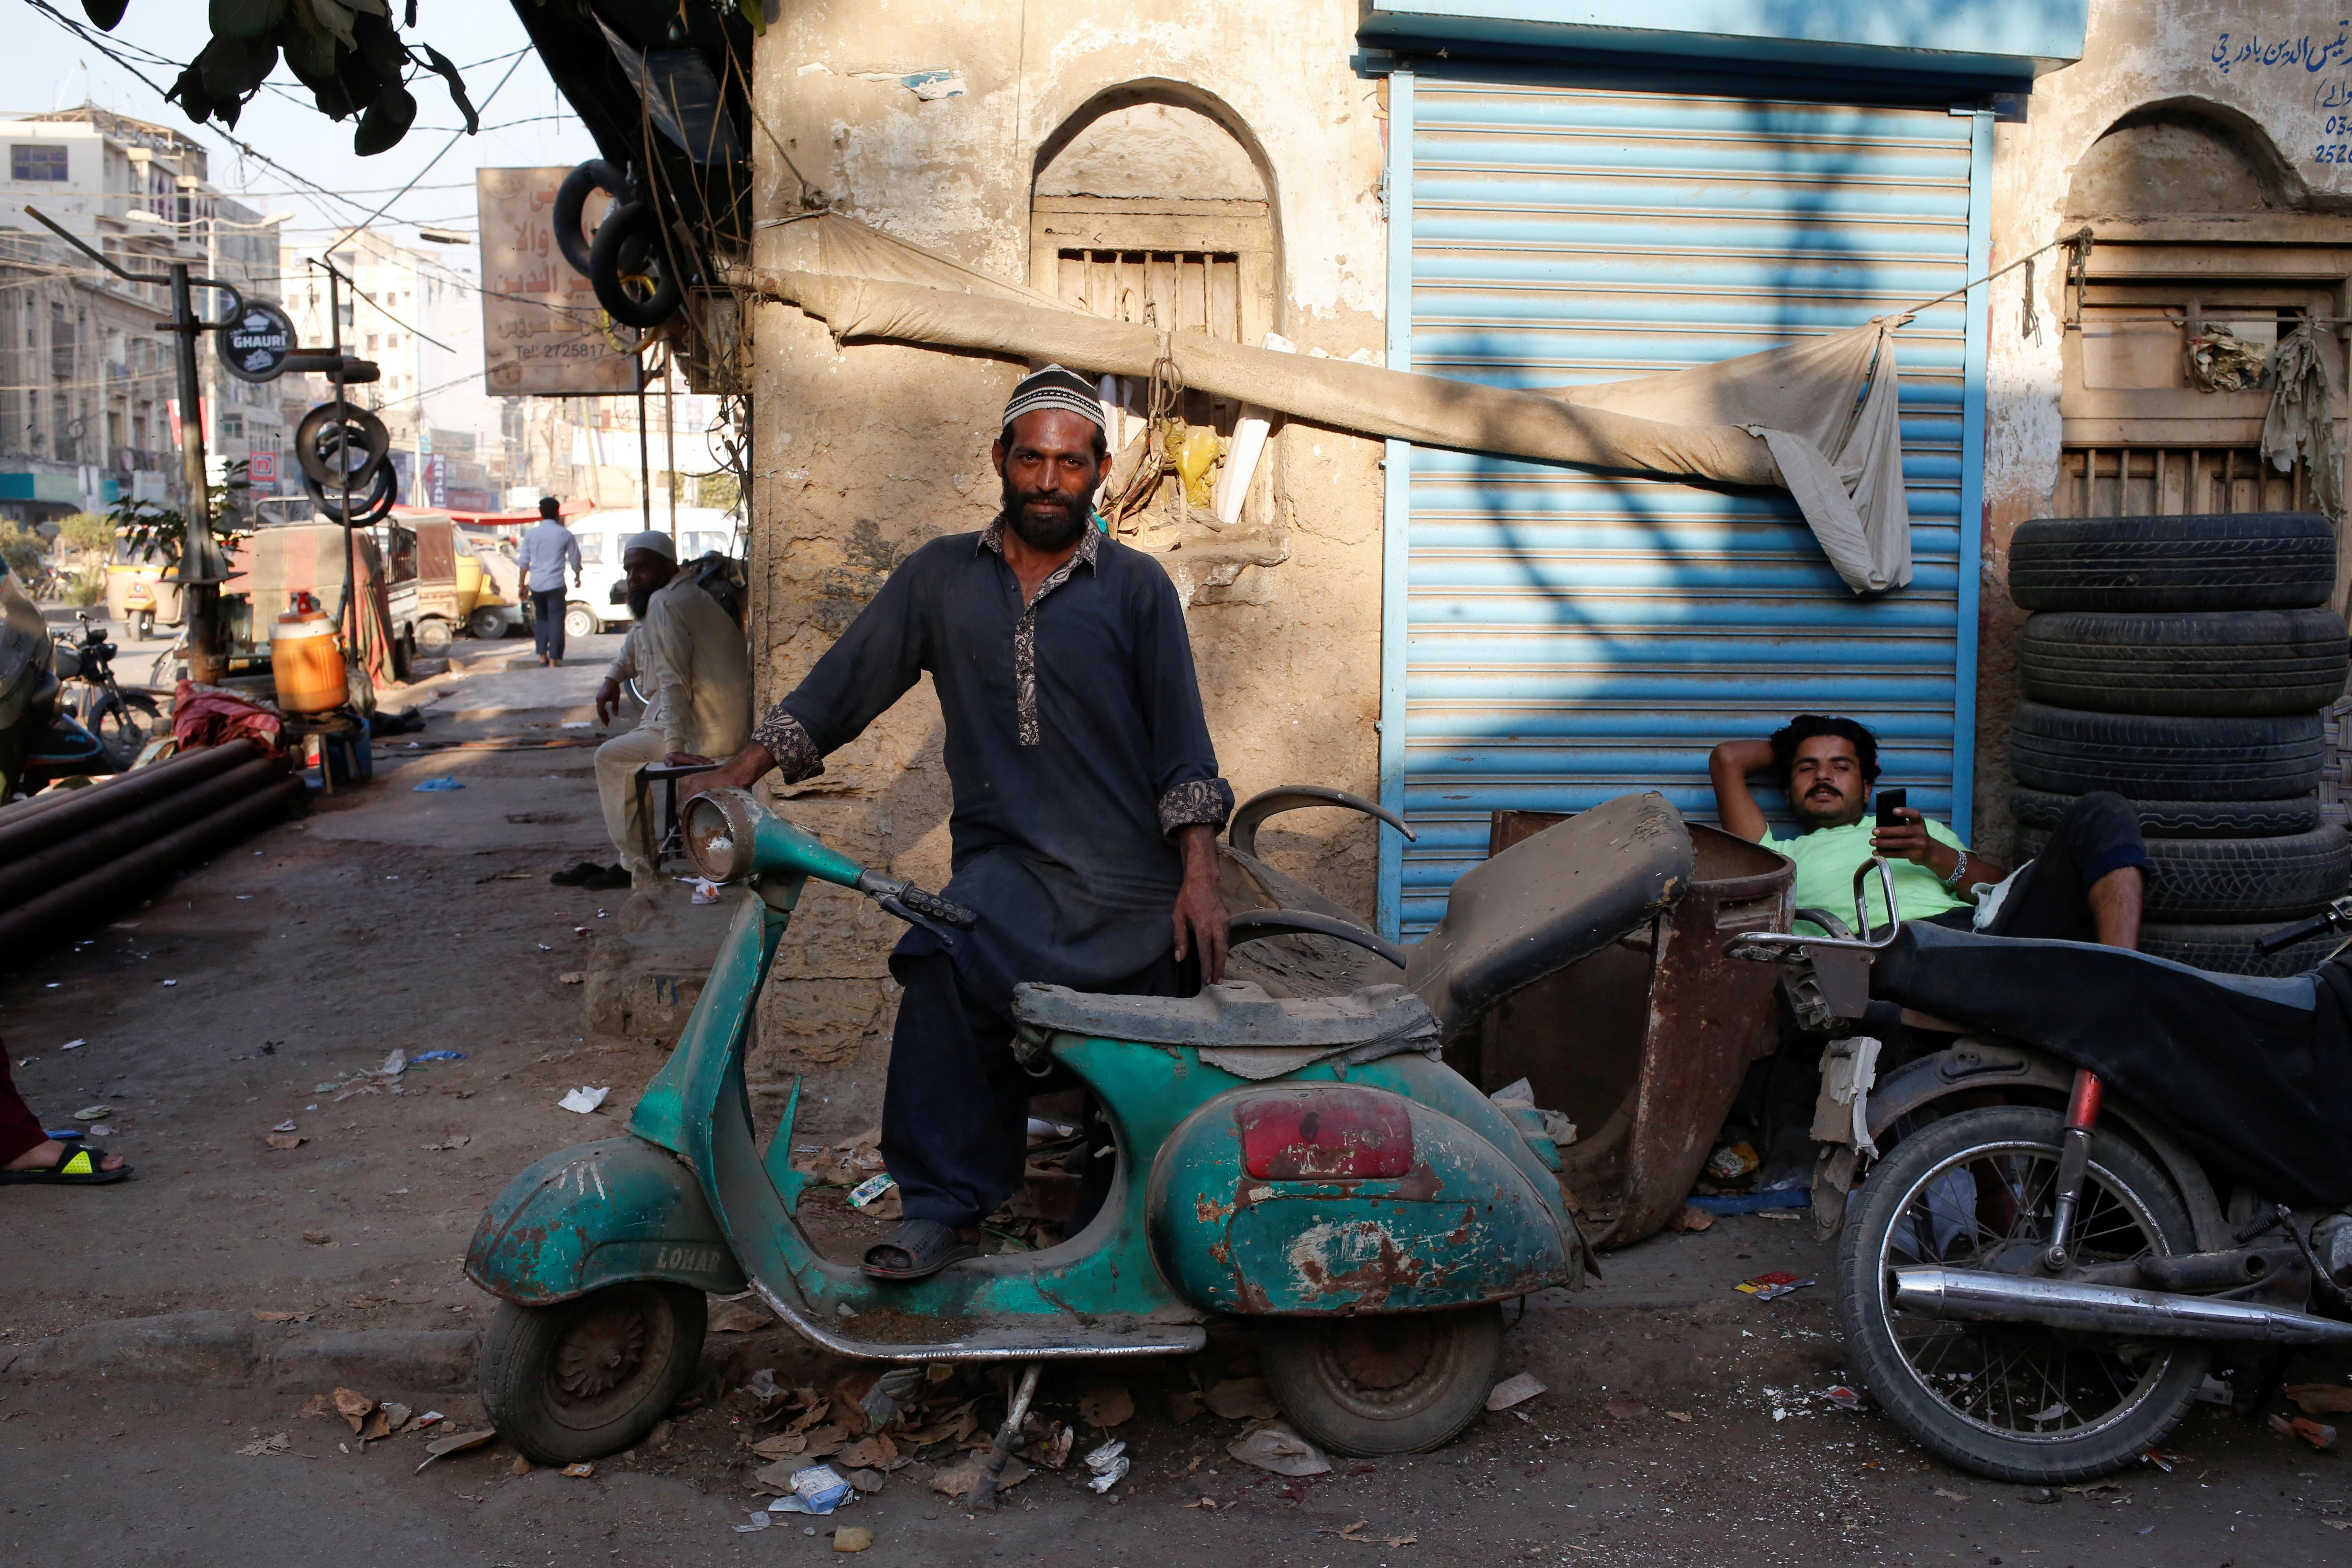 <p>Shahzad stands with his abandoned Vespa scooter in Karachi, Pakistan March 6, 2018. (Photo: Akhtar Soomro/Reuters) </p>